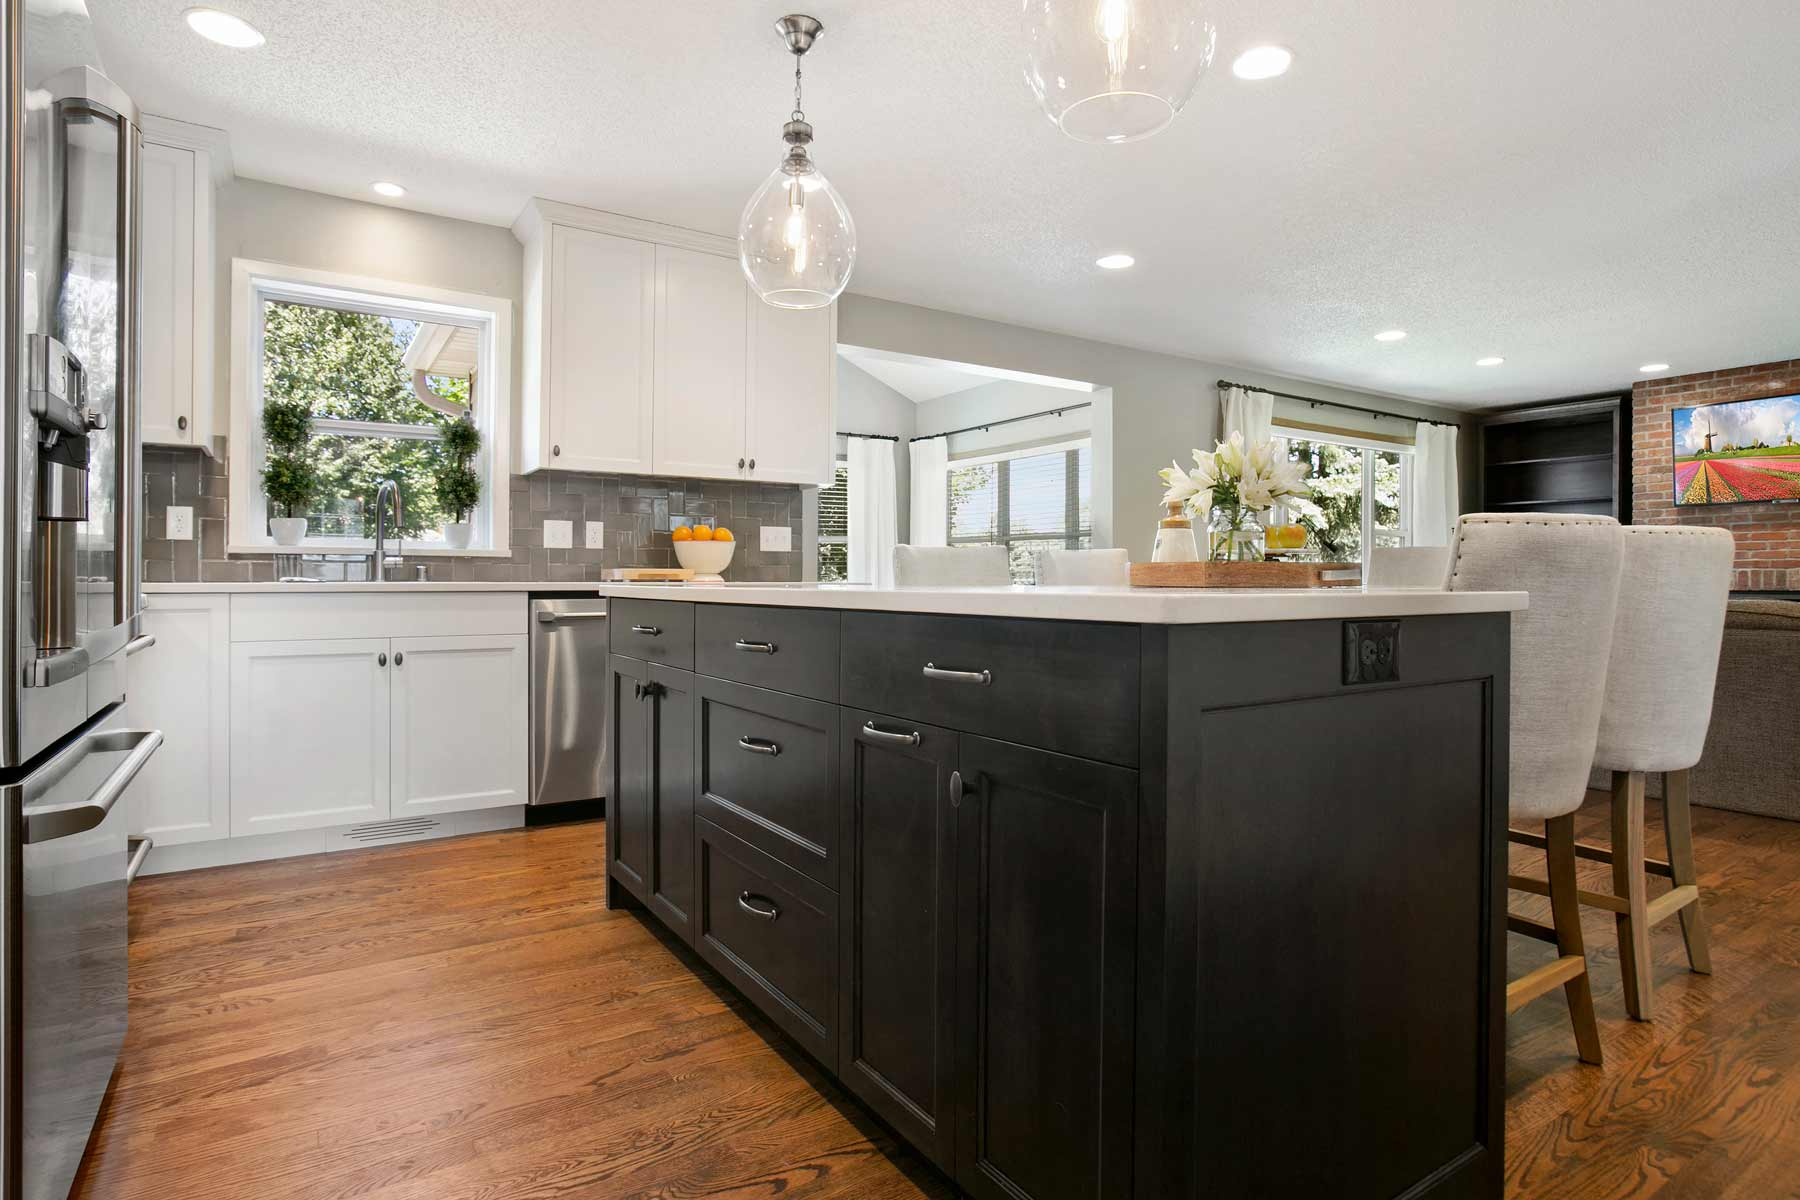 twin cities home design remodeling james barton design build imagine the possibilities